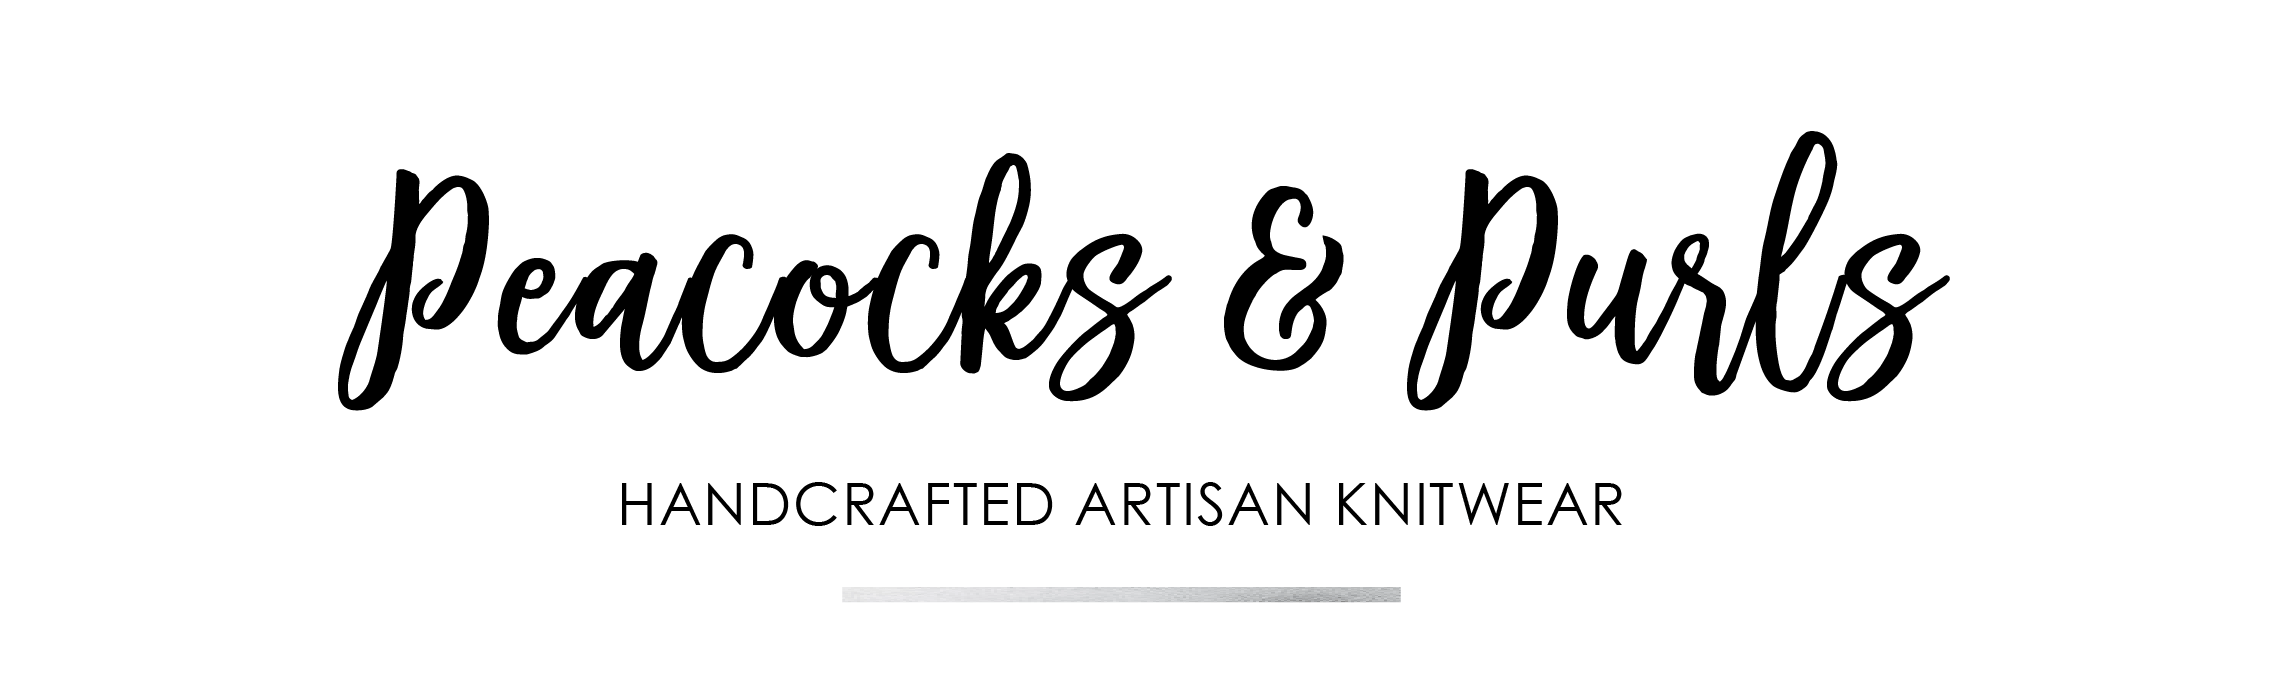 Hand-crafted Artisan Knitwear & Designs